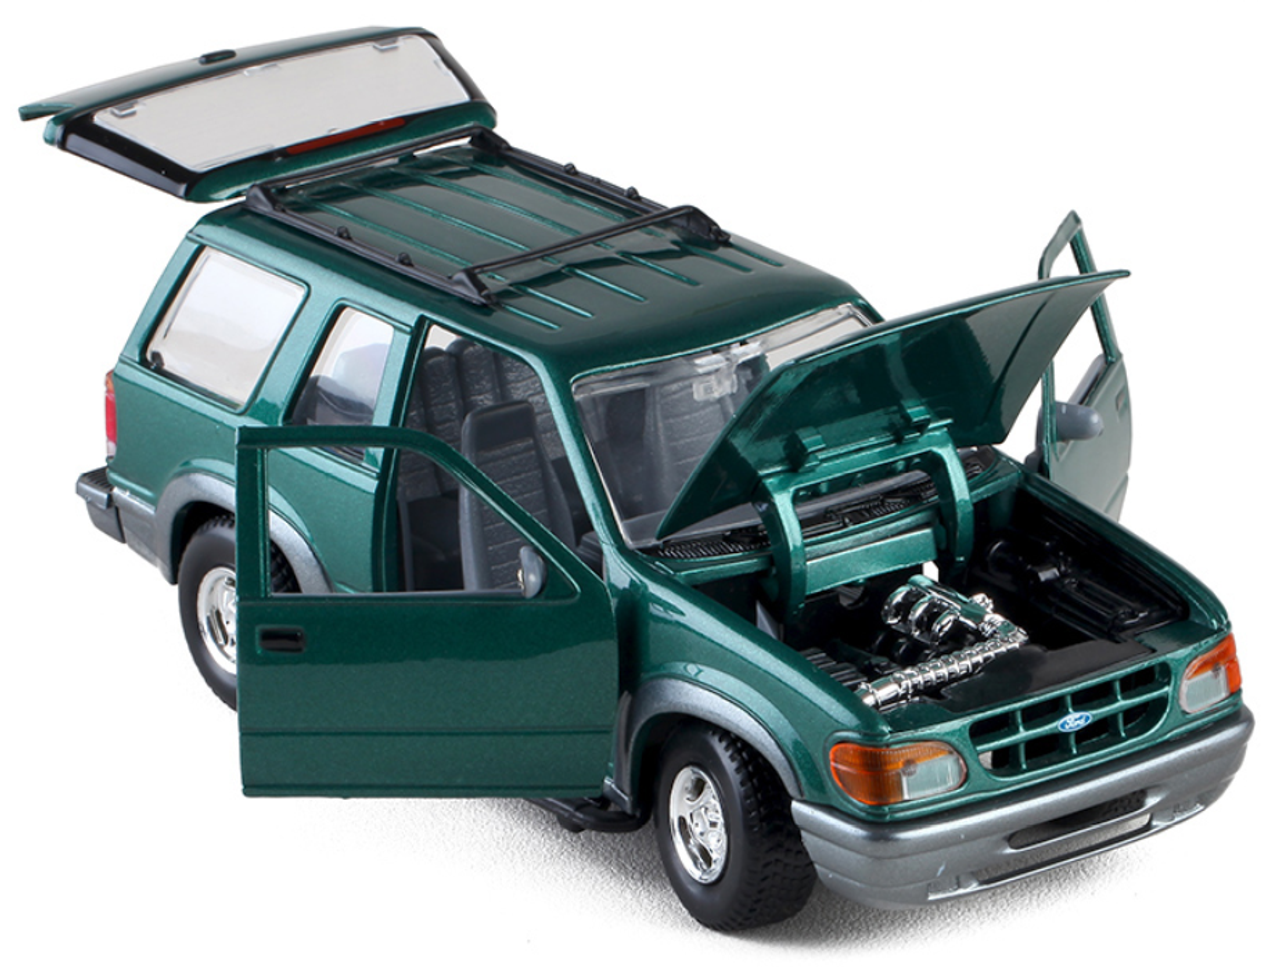 1/24 Ford Explorer (Green) Diecast Car Model (no box)